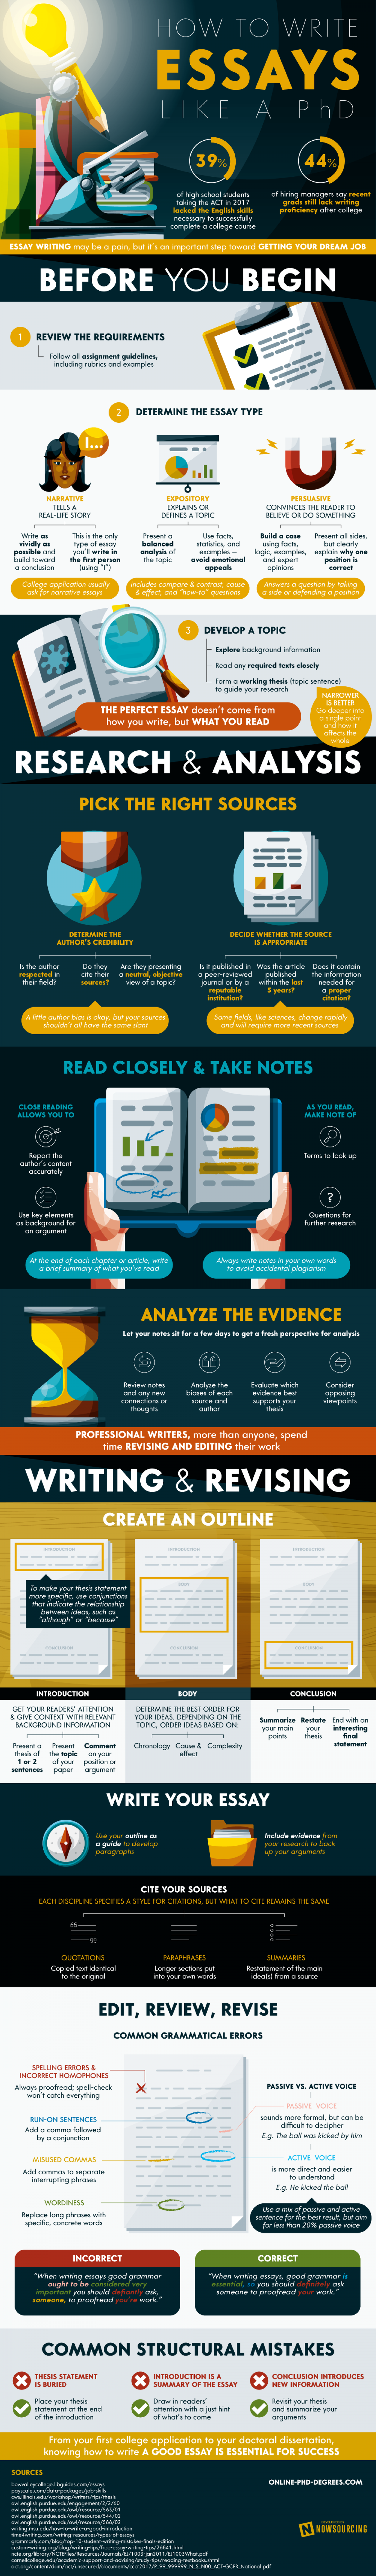 How To Write A Perfect Essay Infographic